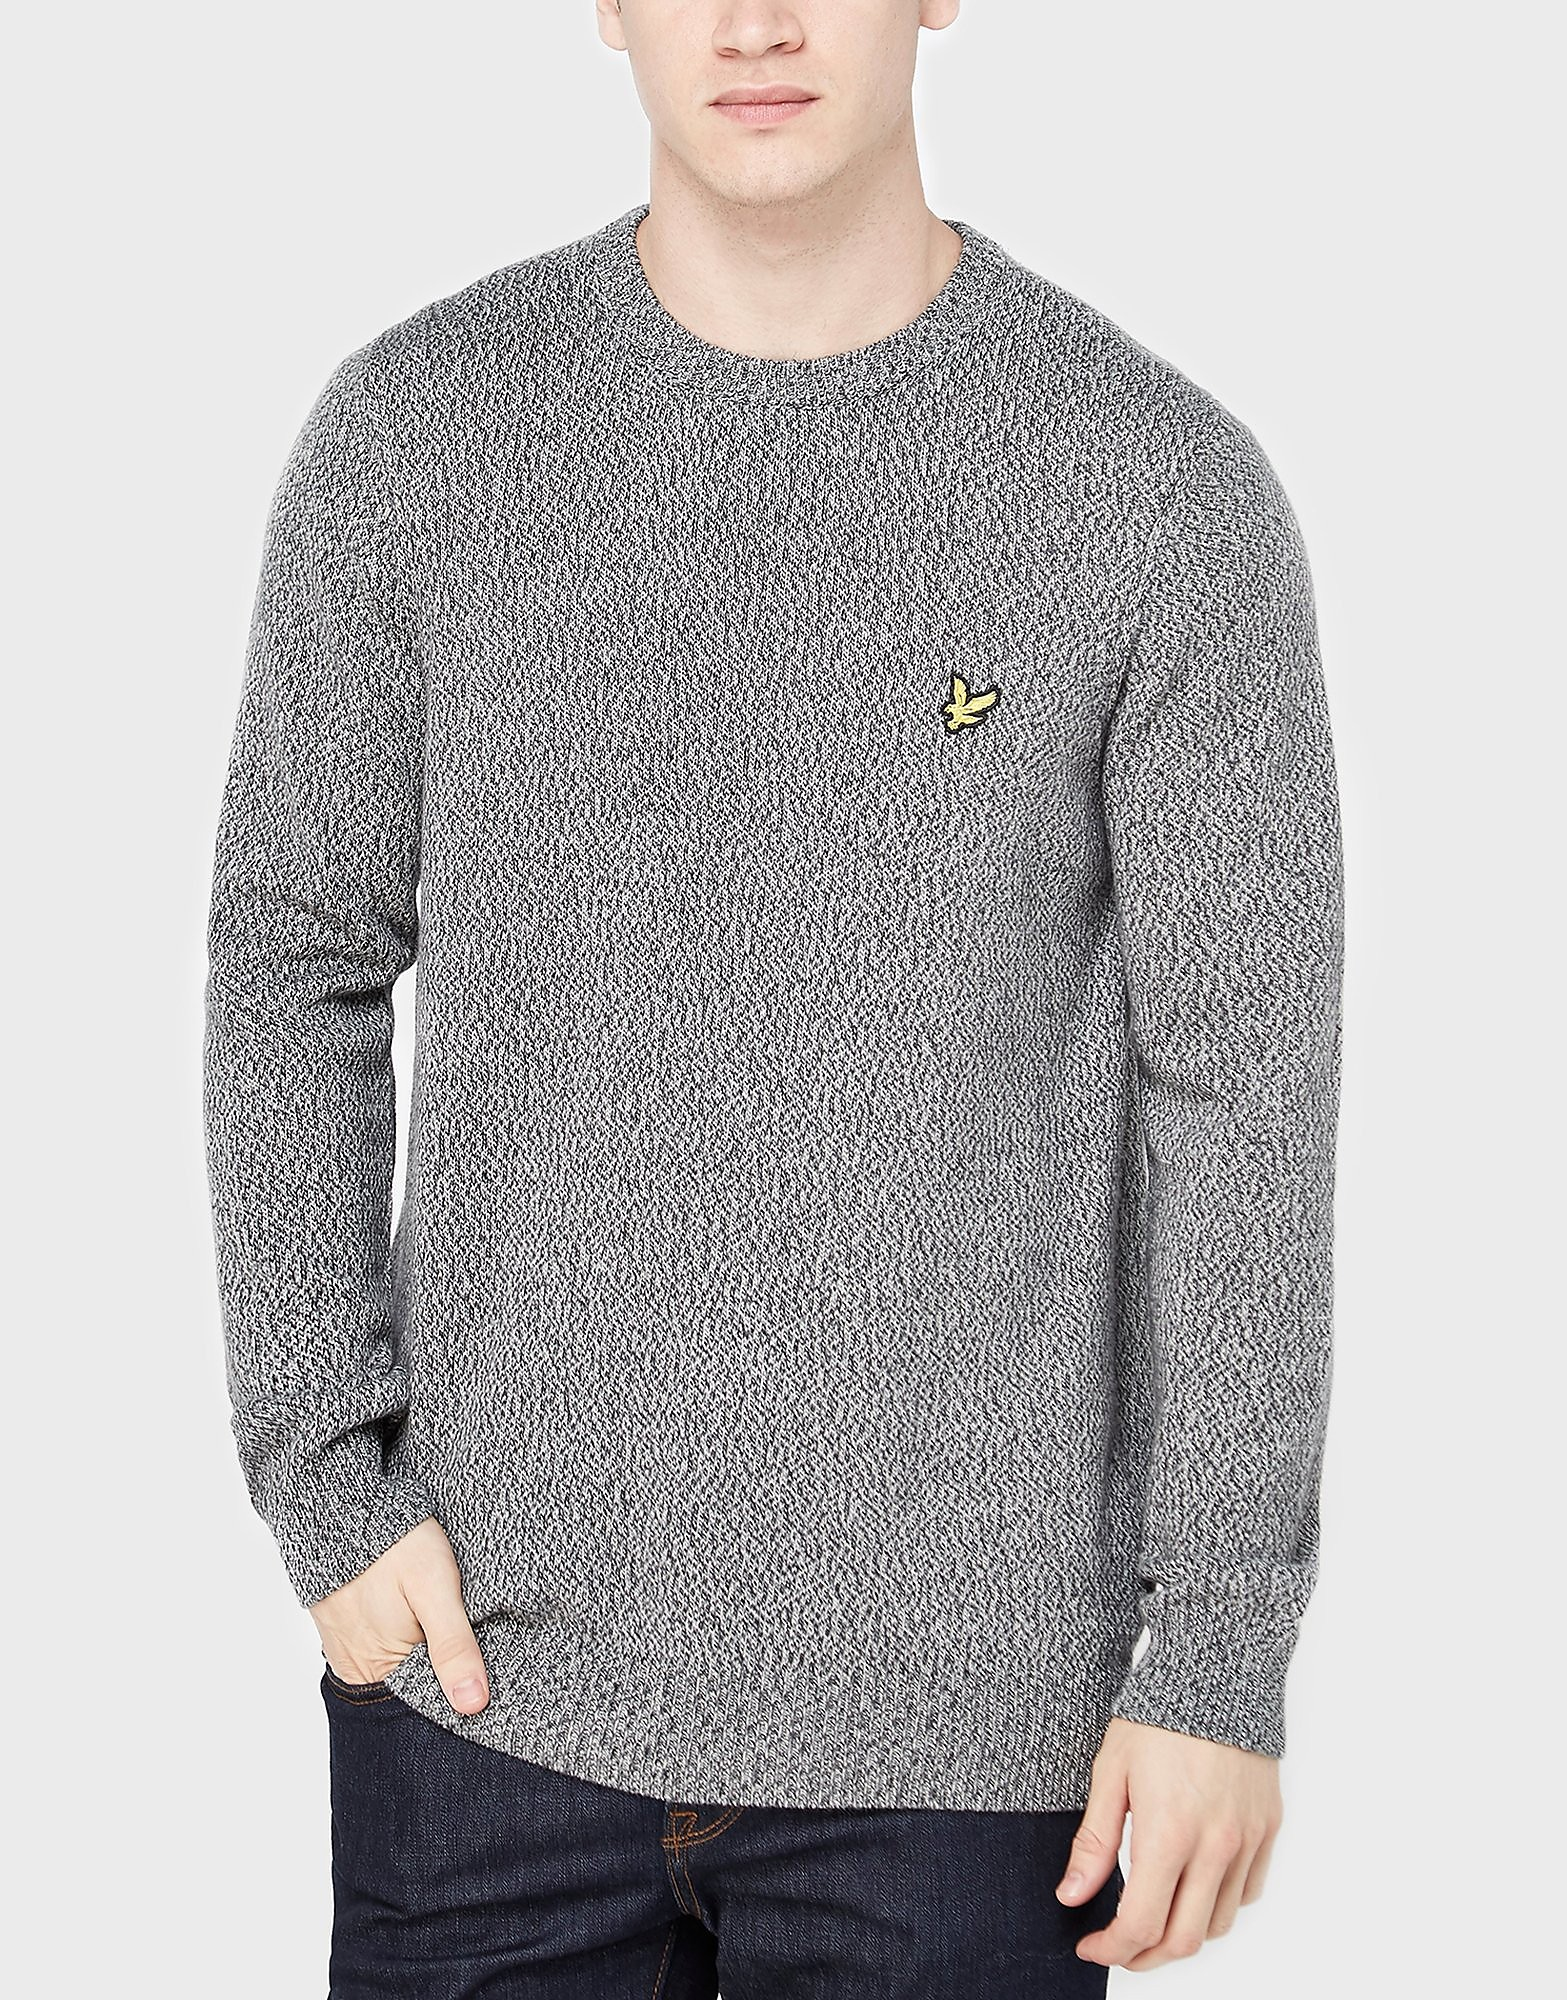 Lyle & Scott Mouline Knit